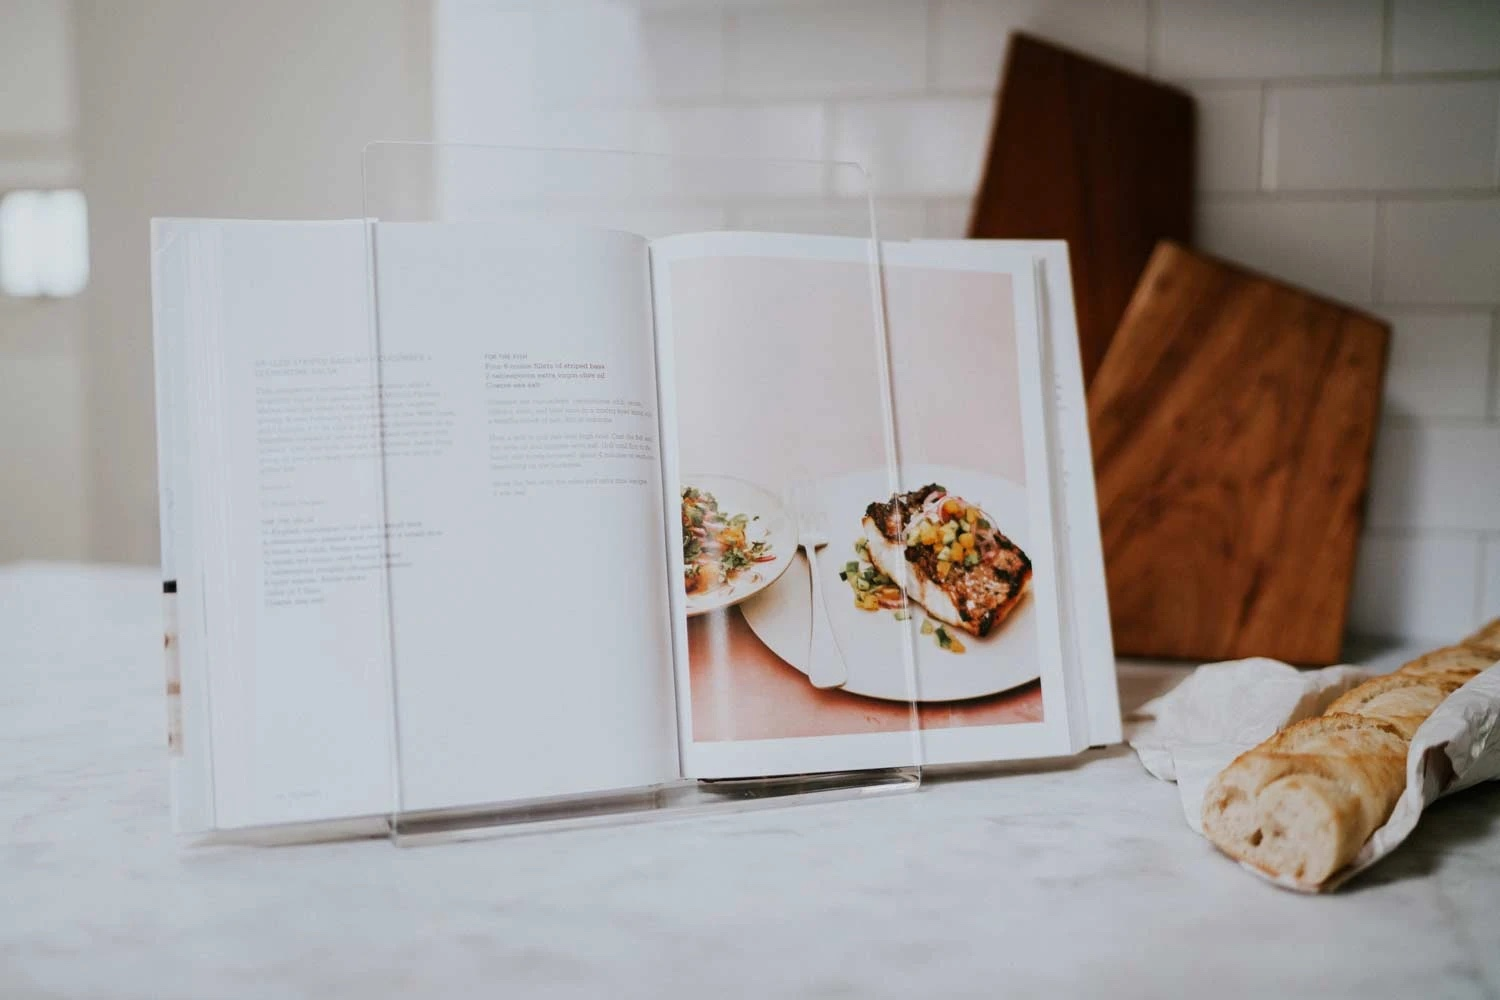 Gift ideas for home cooks: A 100% recycled Italian lucite cookbook holder from Newly